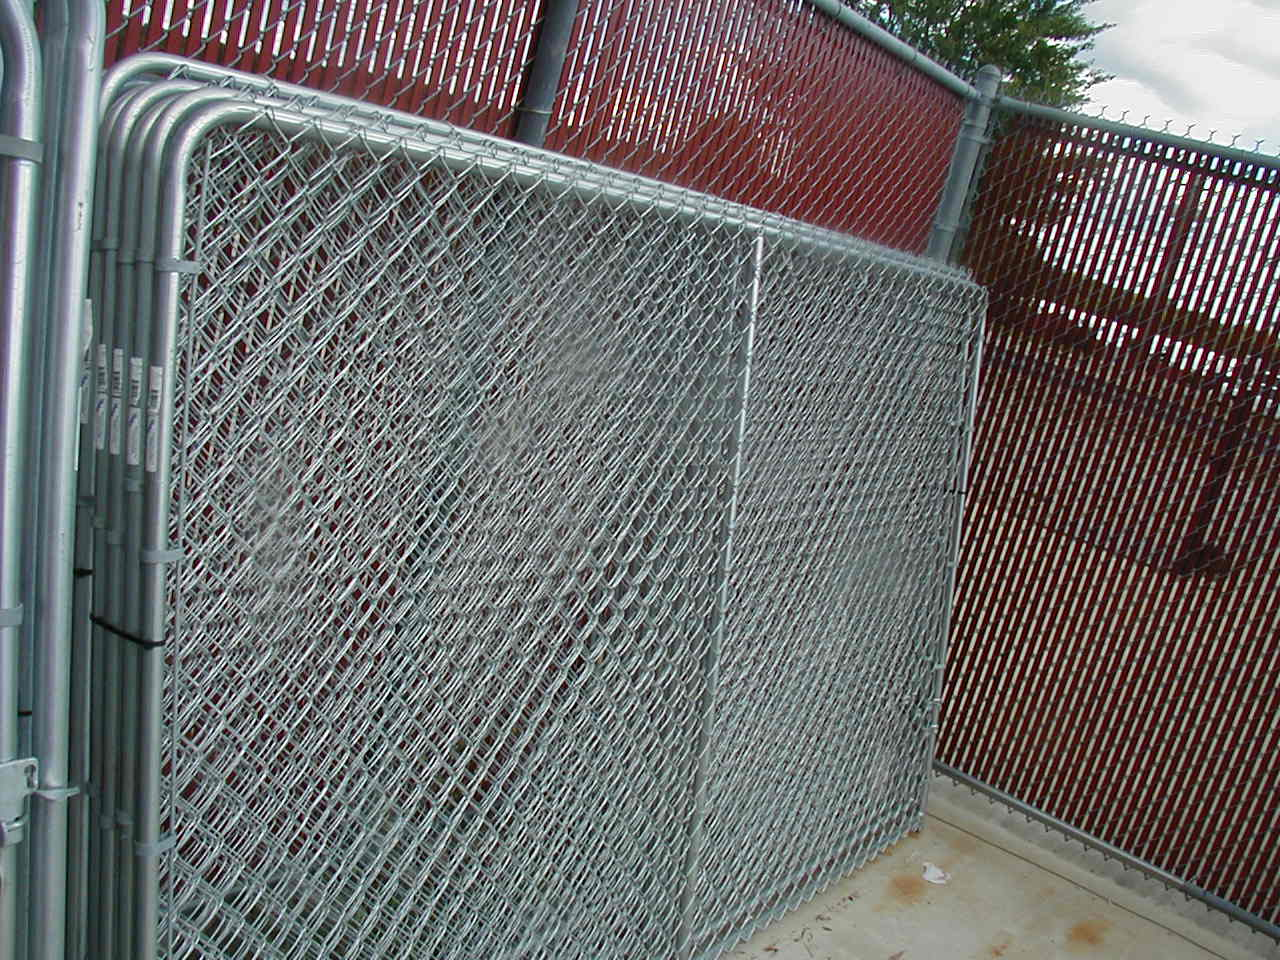 Metal Fence Panels - Buy Metal Fence Panels,Fence Panels,Pvc Fence